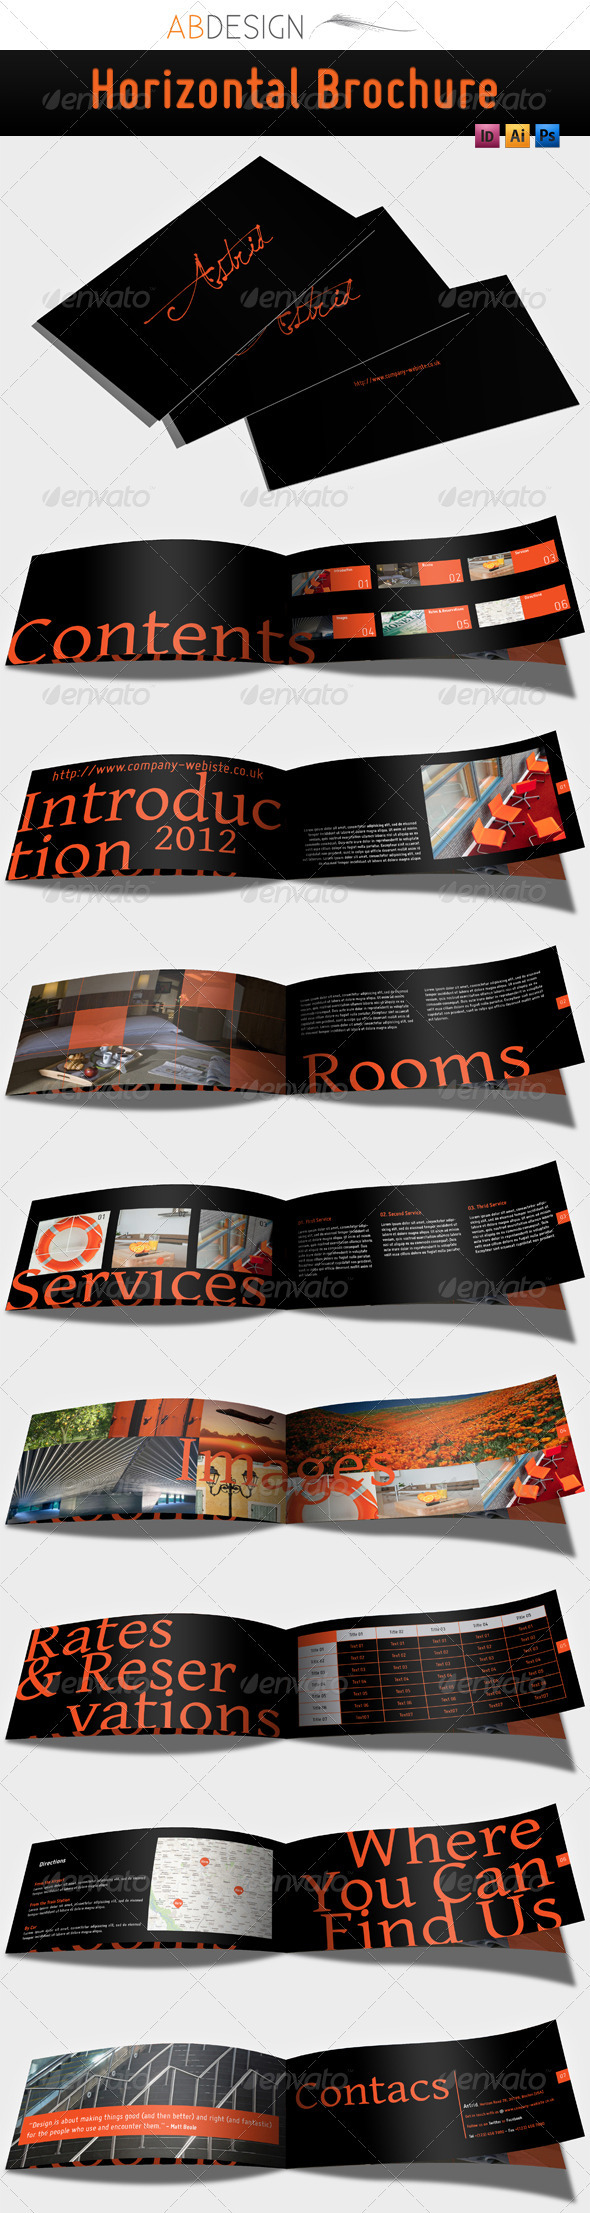 Horizontal Brochure - Corporate Brochures